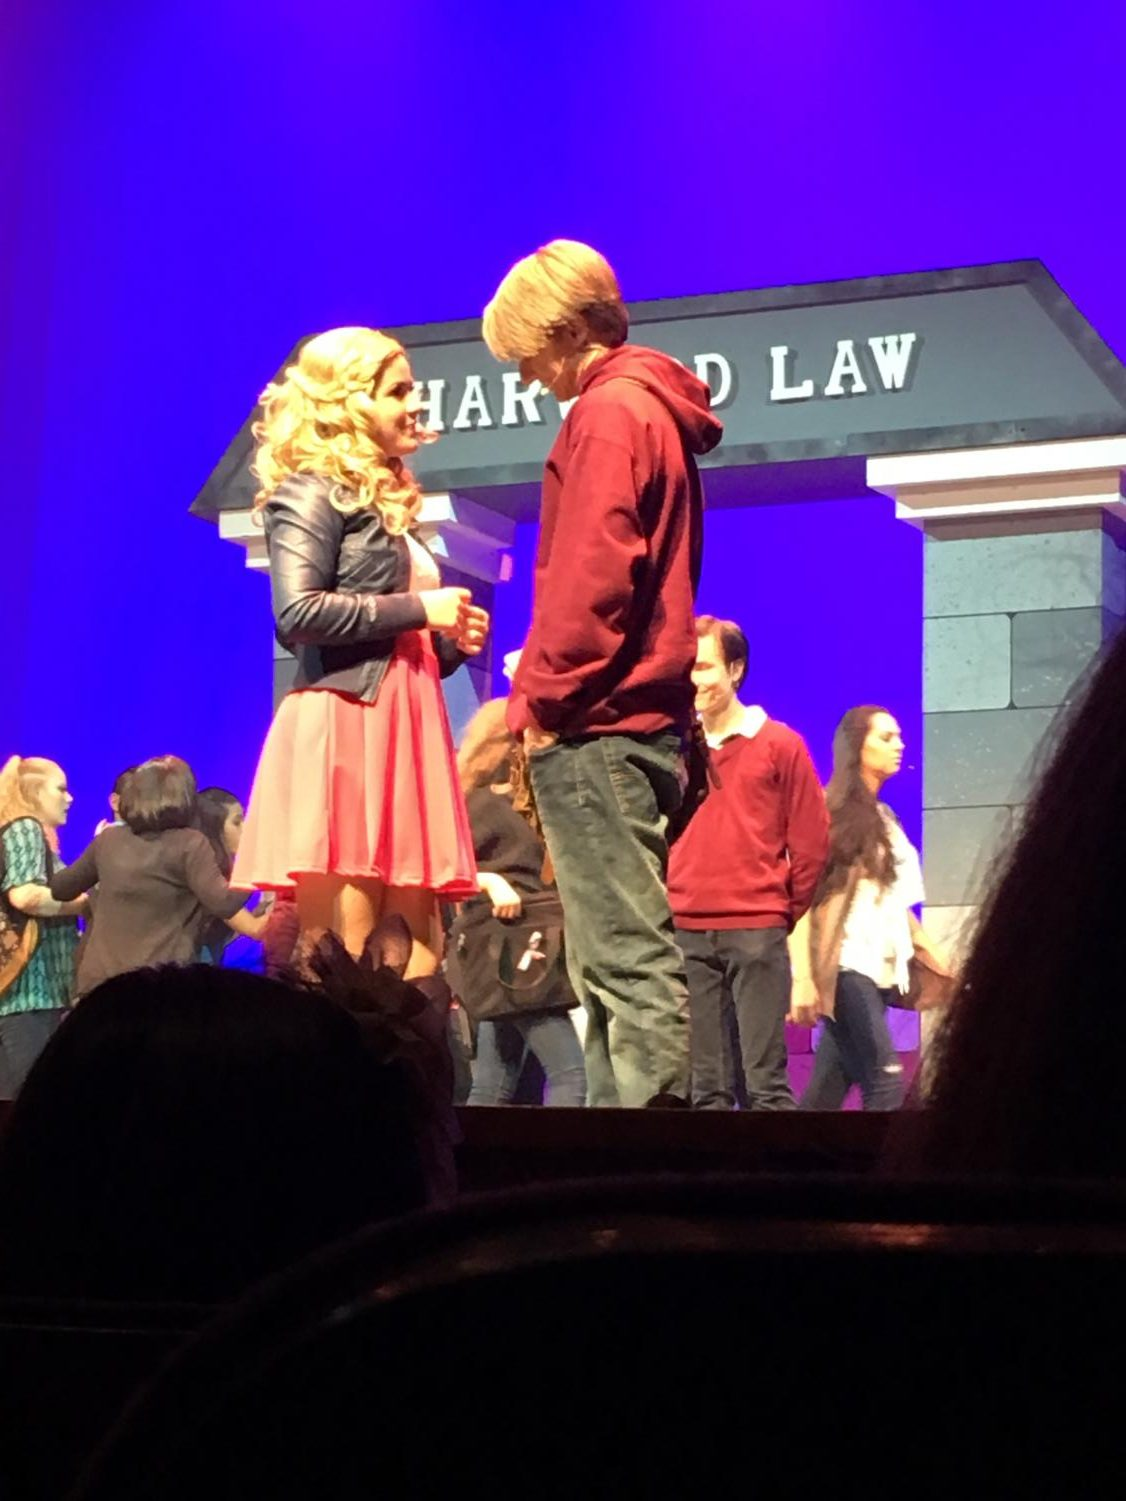 Faith Lutheran's Tyler Owen leads the cast of Legally Blonde, playing Emmett opposite Elle Woods performed by Maddy Appleyard of Palo Verde High School at the  Summerlin Library.